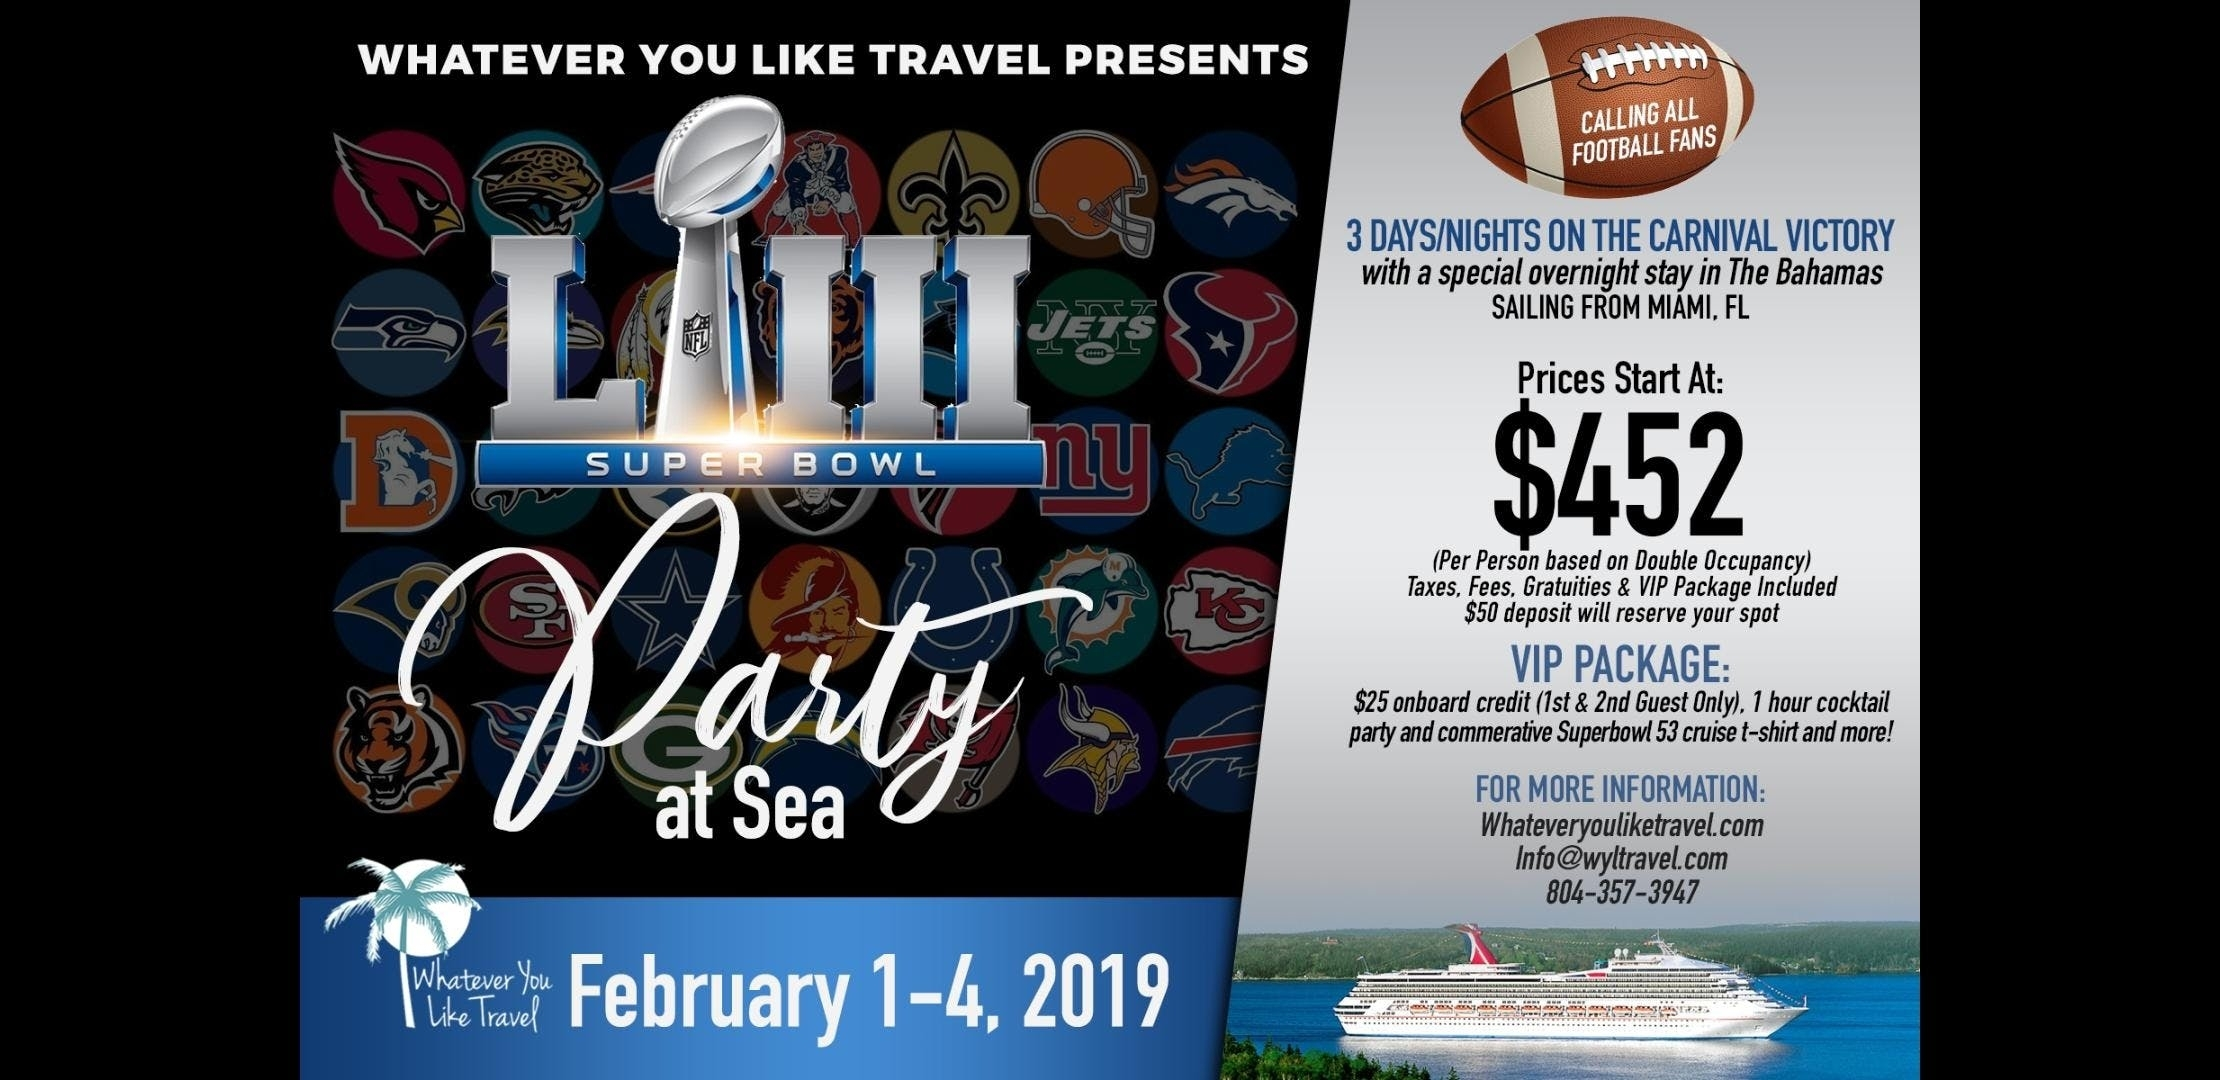 Superbowl Party At Sea, Miami Fl - Feb 1, 2019 - 4:00 Pm with Miami Super Bowl Cruise